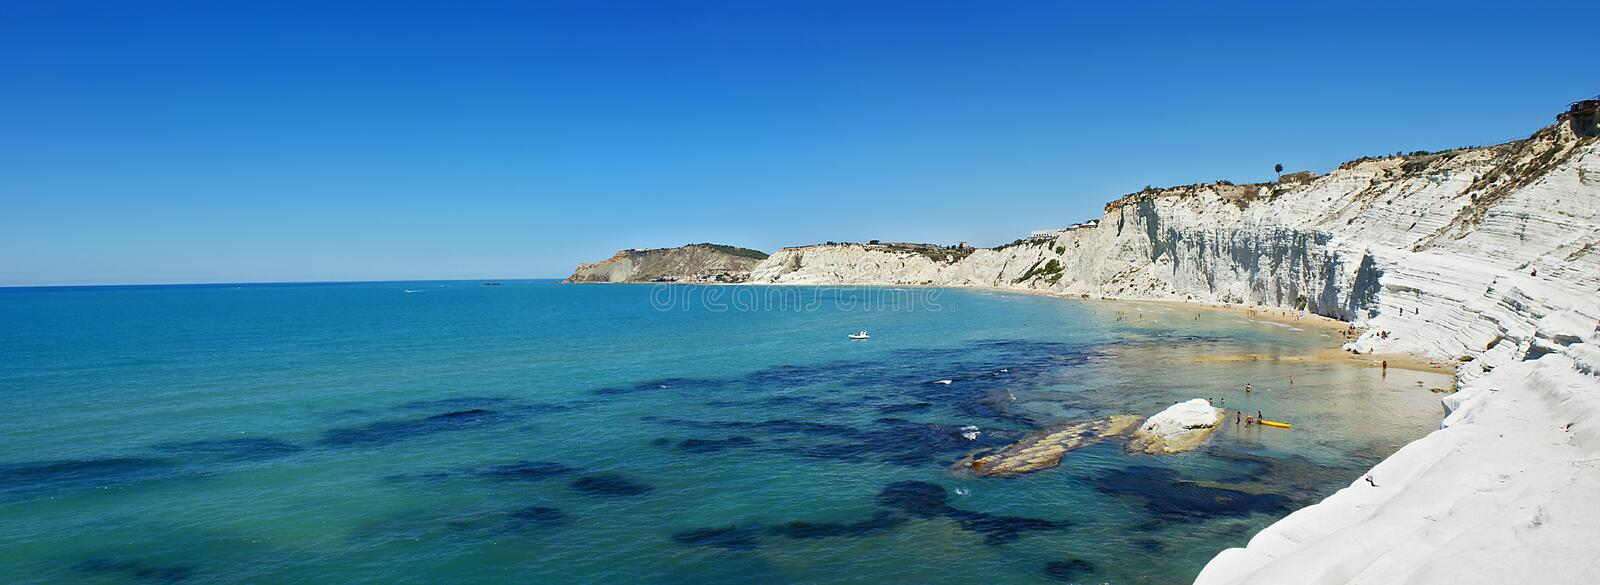 Landscape of Scala dei Turchi- Sicily. Landscape of Scala dei Turchi (Stair of the Turks) in the province of Agrigento (Sicily). This is a rocky cliff on the stock image